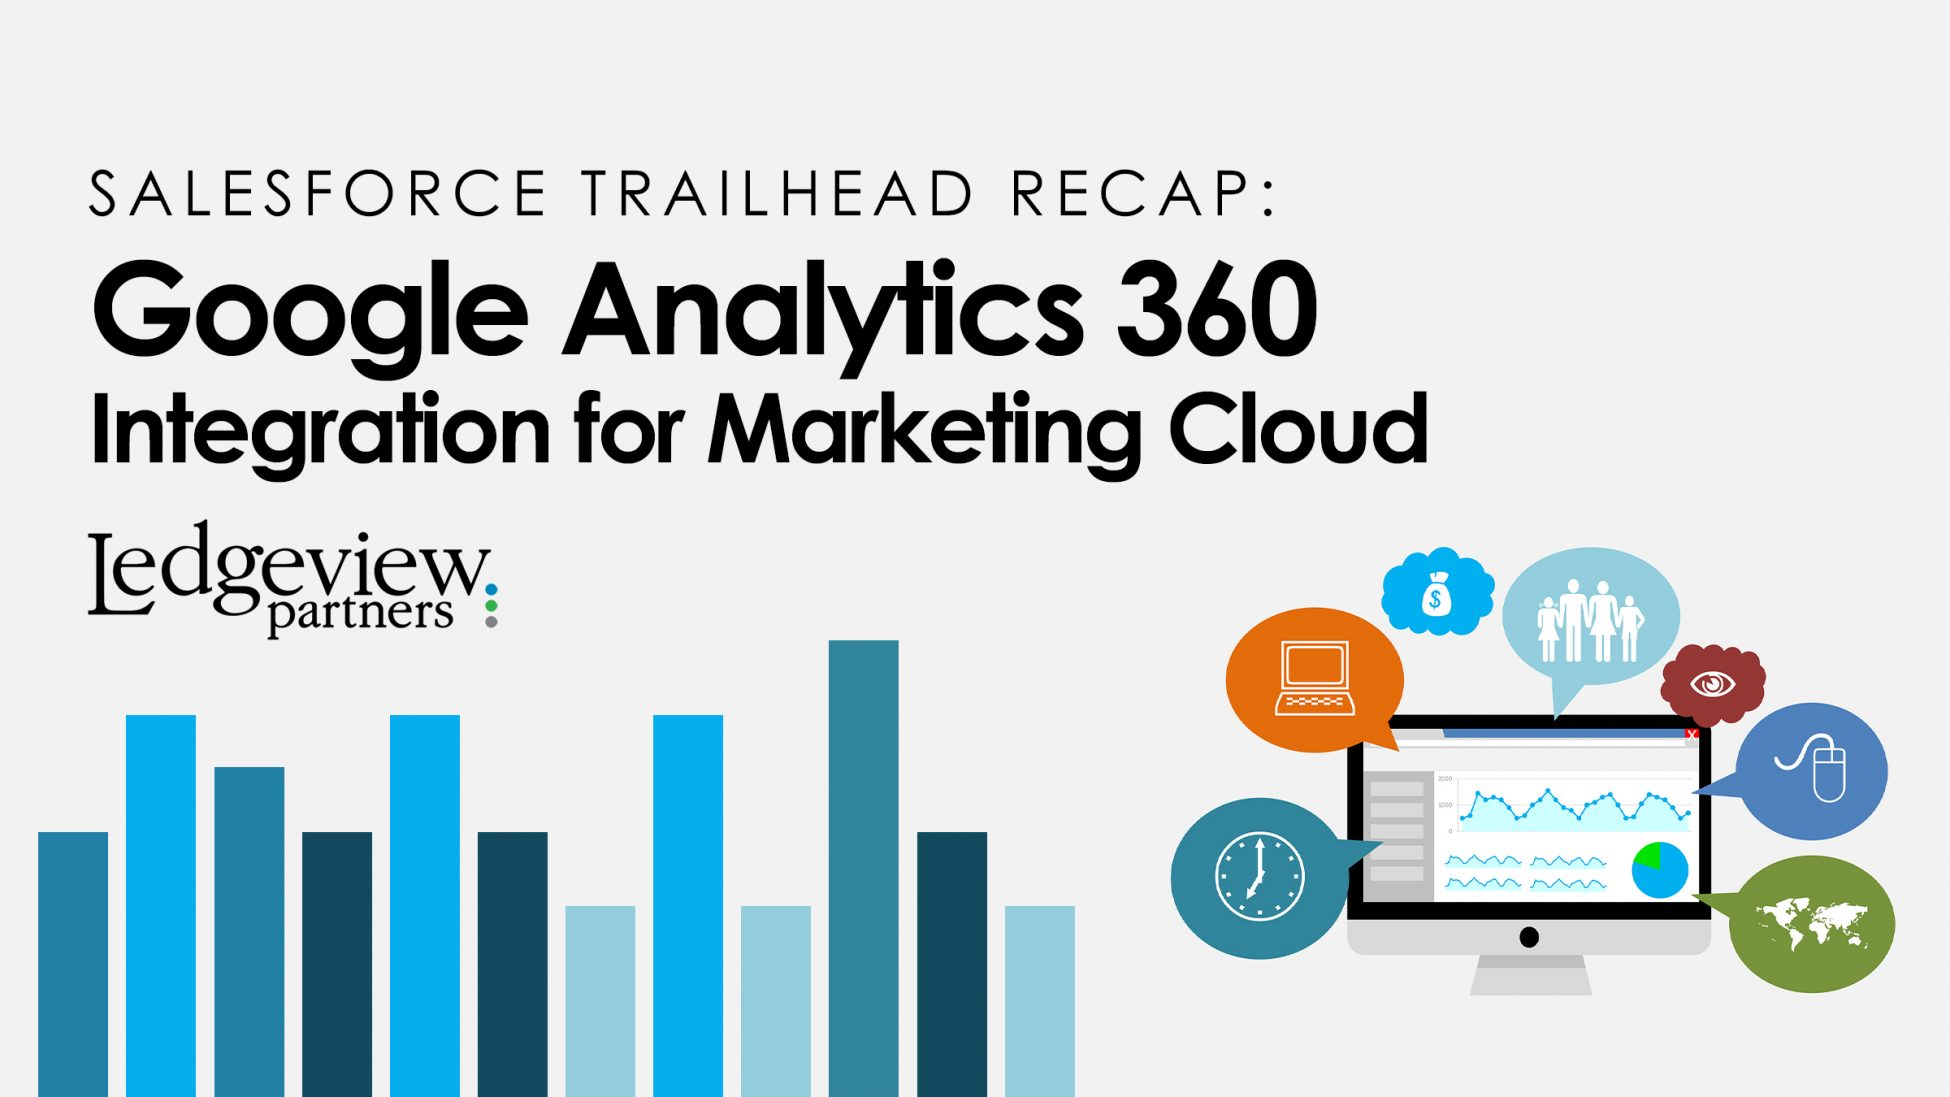 Google Analytics 360 Integration for Marketing Cloud